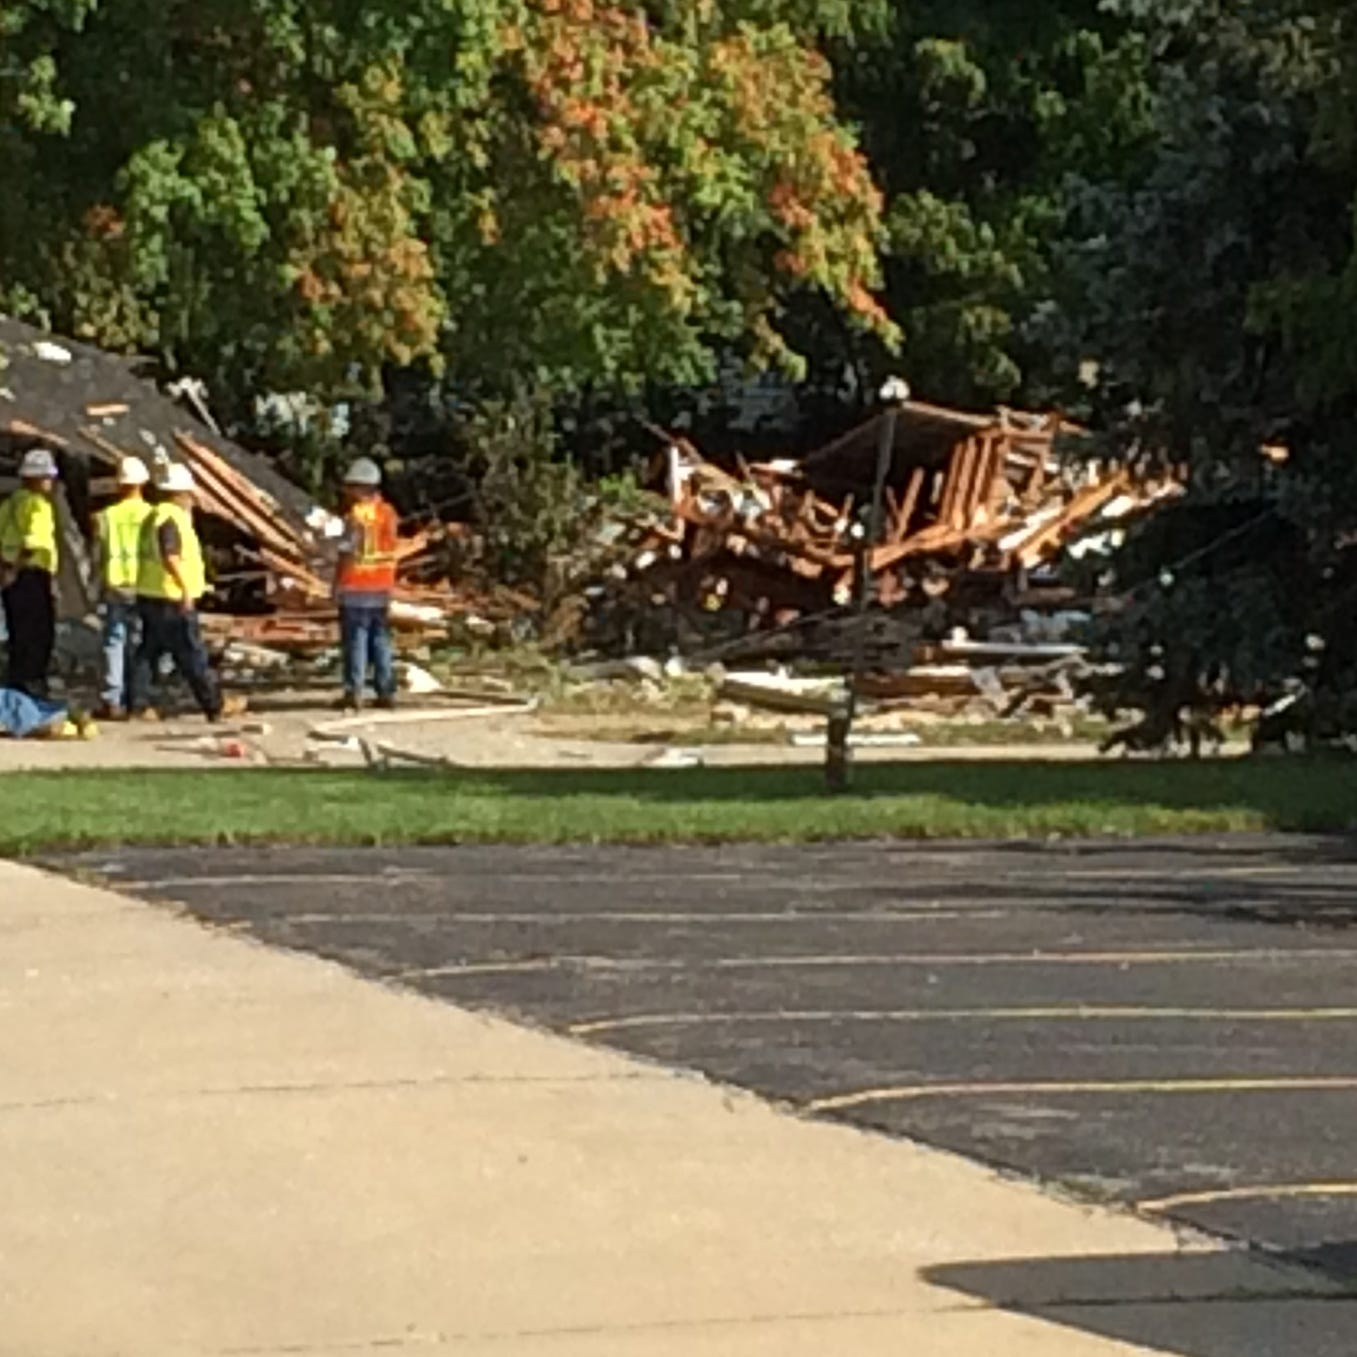 Harper Woods house explosion 'sounded like a bomb'